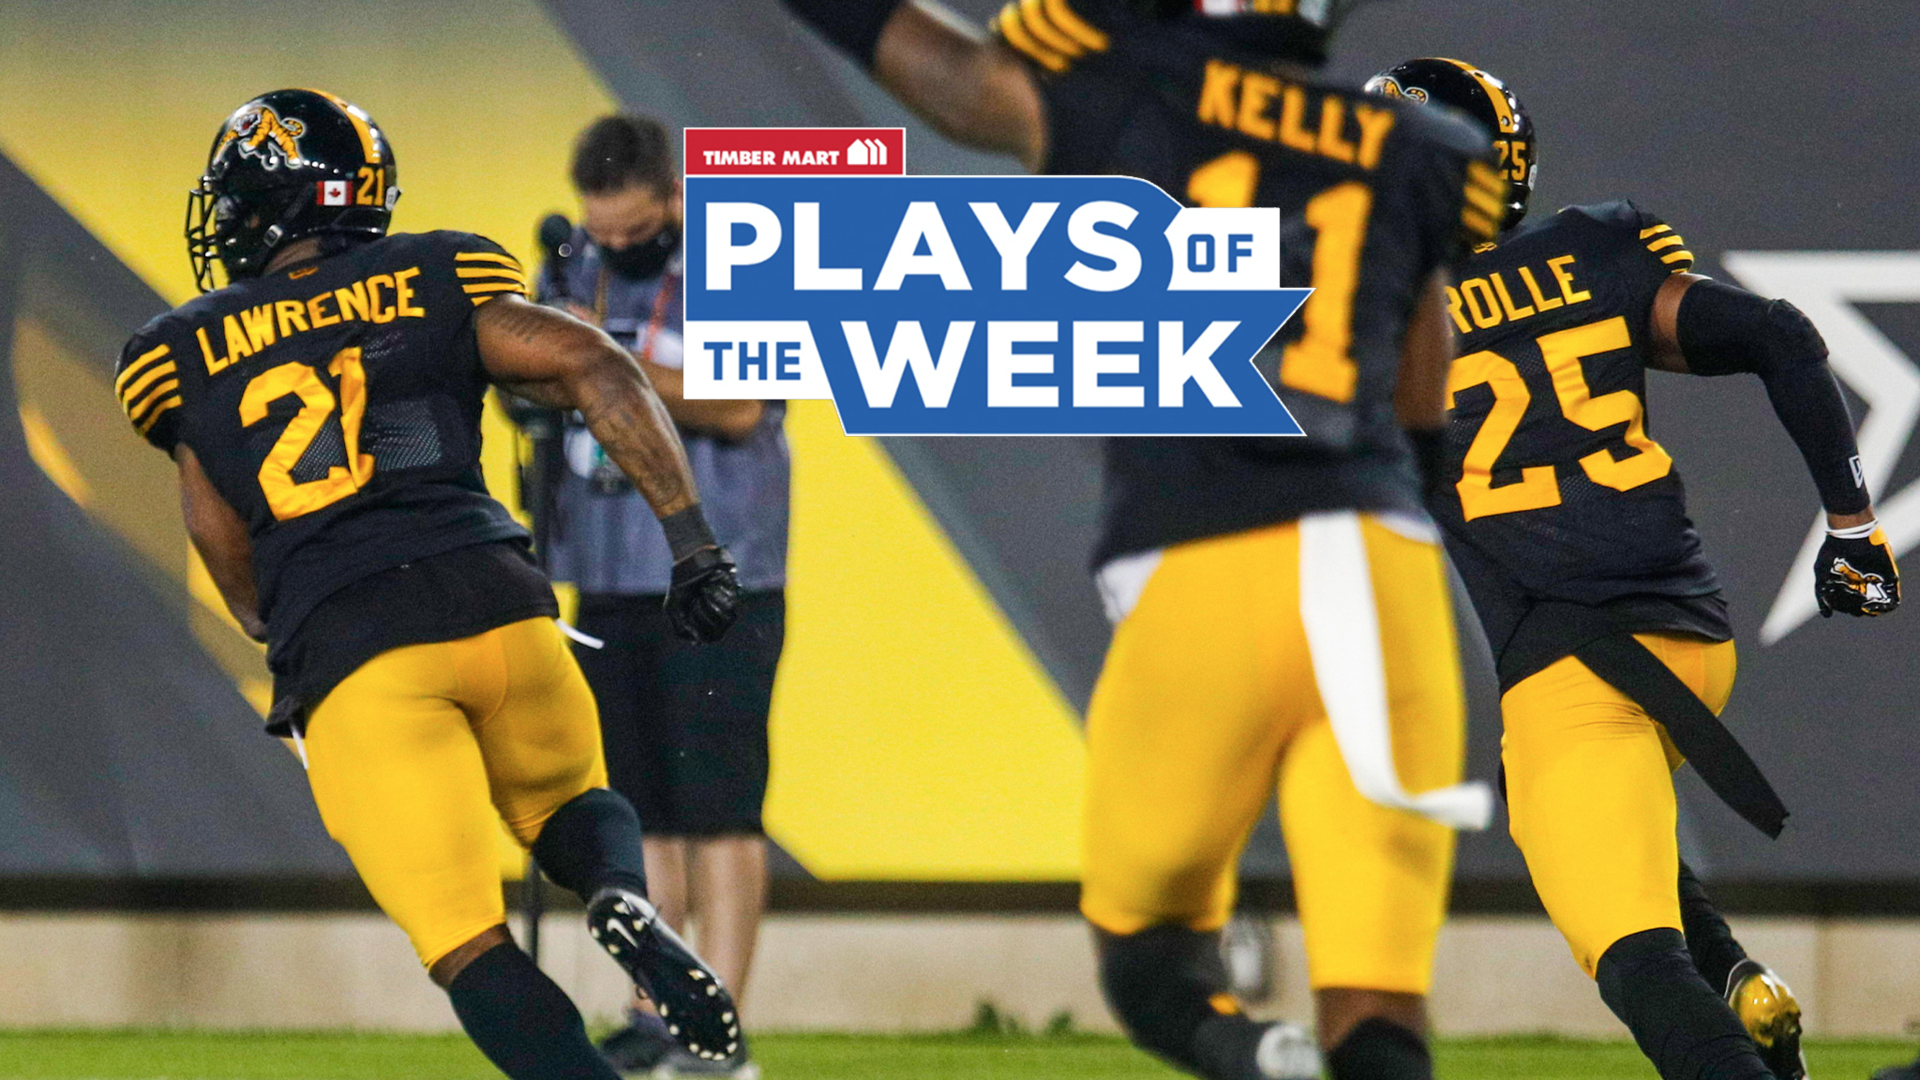 Bouncing off tackles in the Timber Mart Plays of the Week